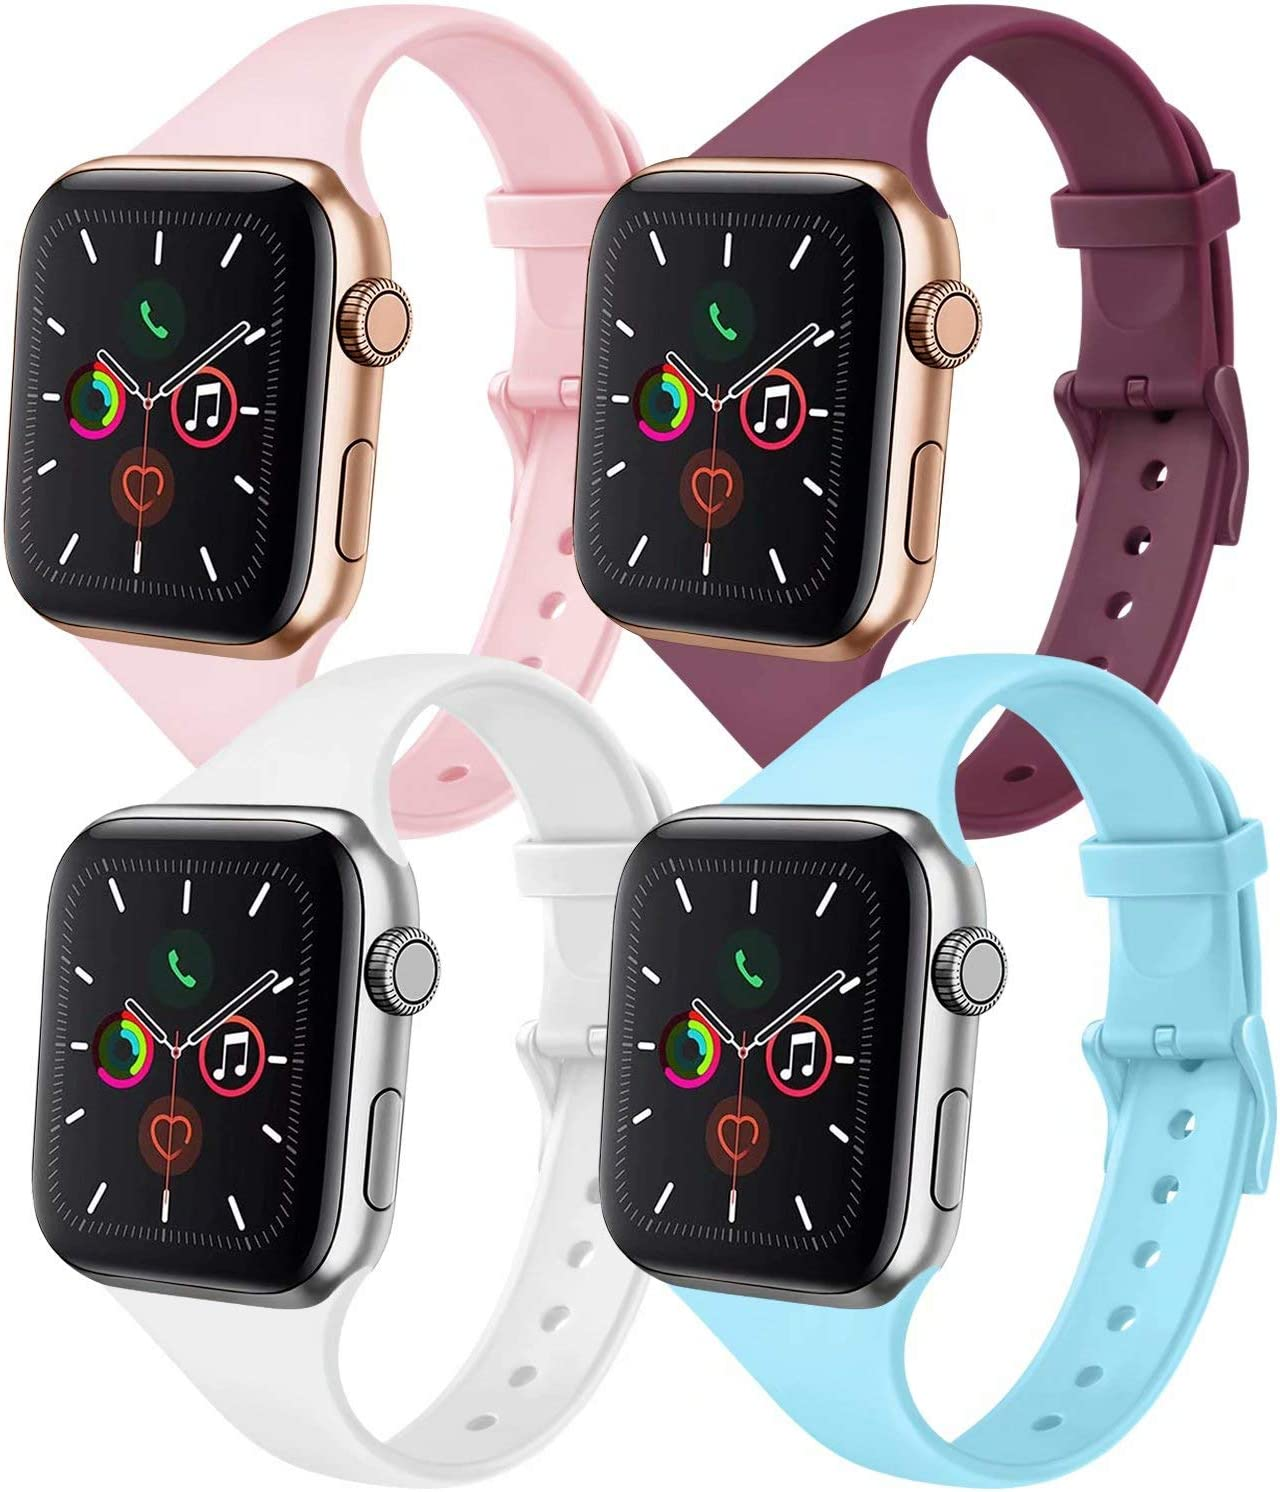 IEOVIEE [Pack 4] Silicone Slim Bands Compatible with Apple Watch bands 42mm 38mm 44mm 40mm Series 6 5 4 3 & SE, Narrow Replacement Wristbands (Light Blue/Wine Red/White/Pink, 38mm/40mm S/M)